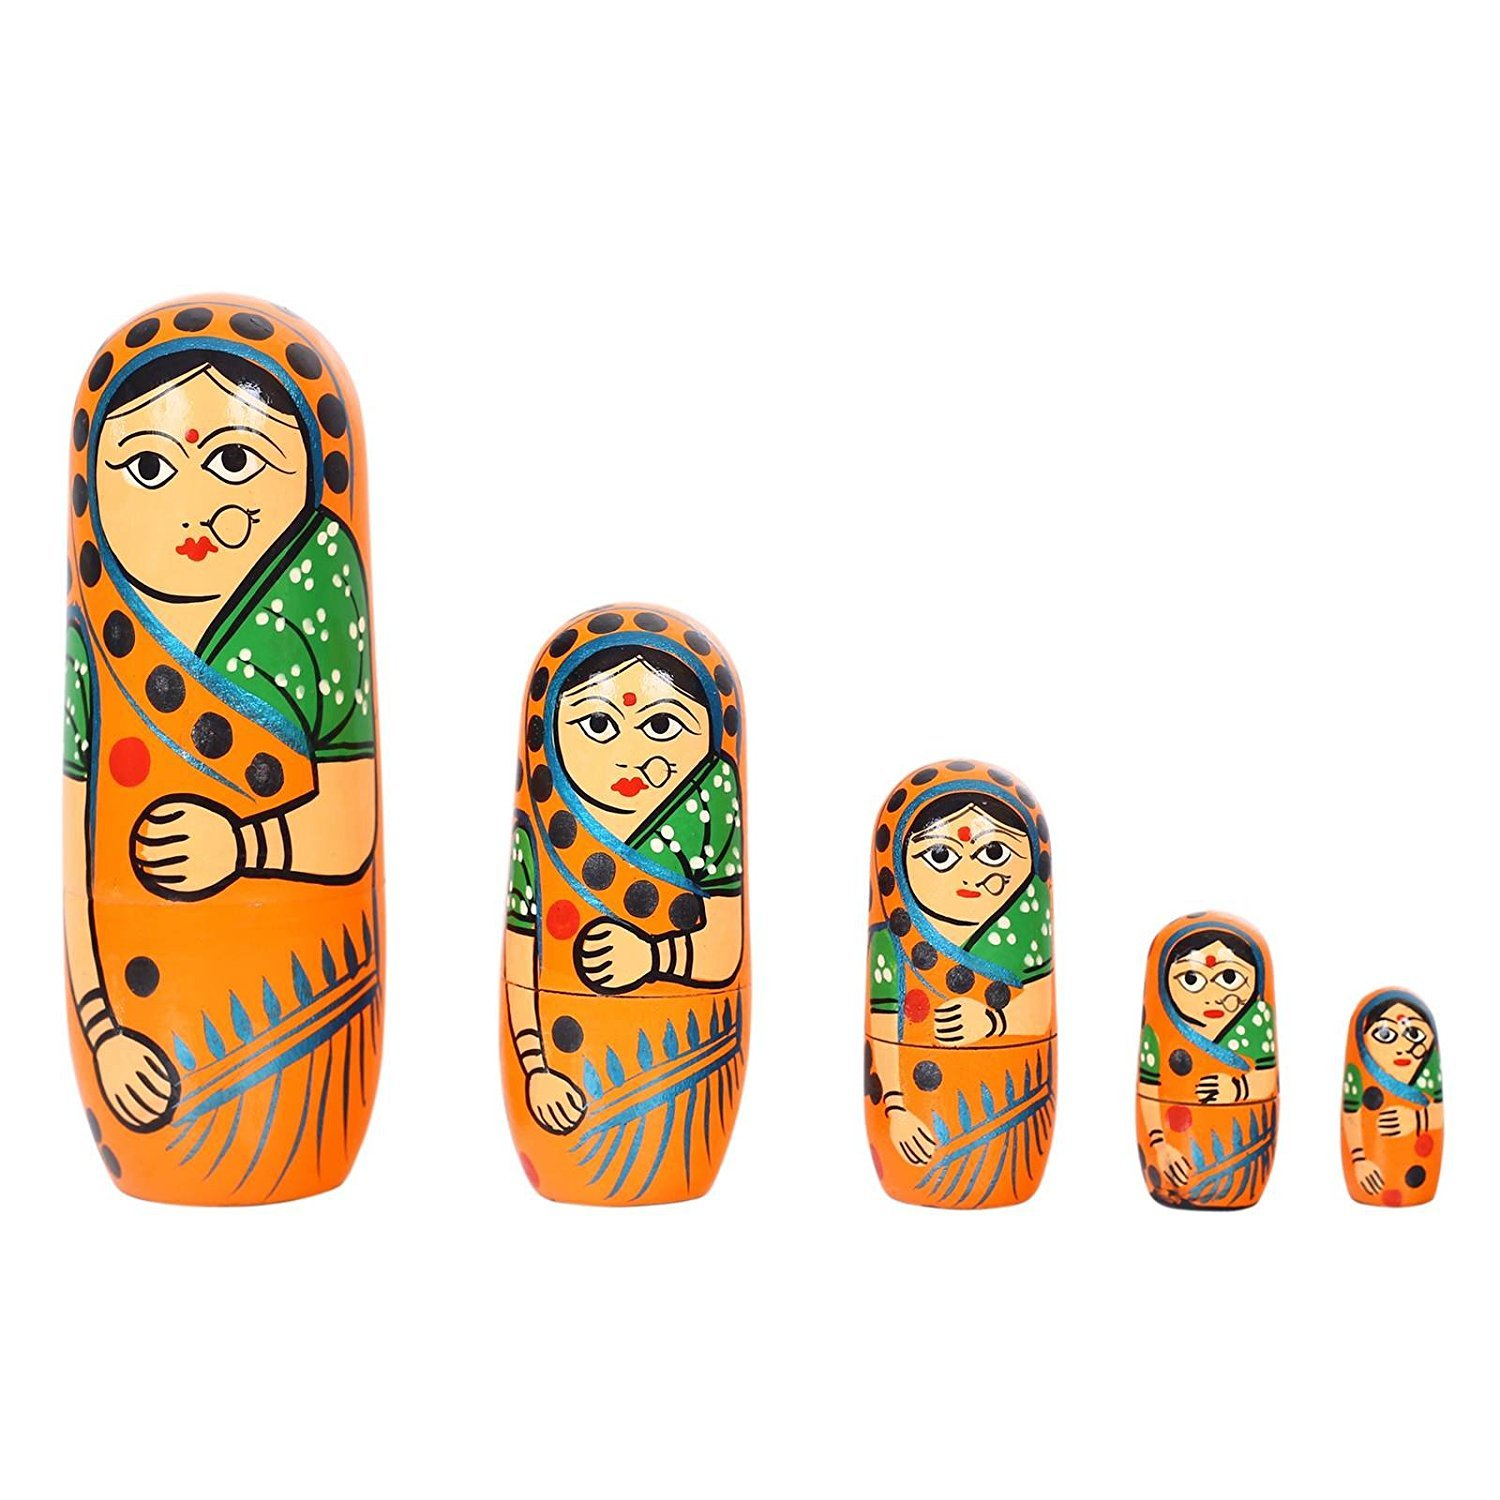 ITOS365 Hand Painted Nesting Doll Wooden Decoration Gift Doll Stacking Nested Wood Dolls for Kids Set of 5 5 Dolls in 1